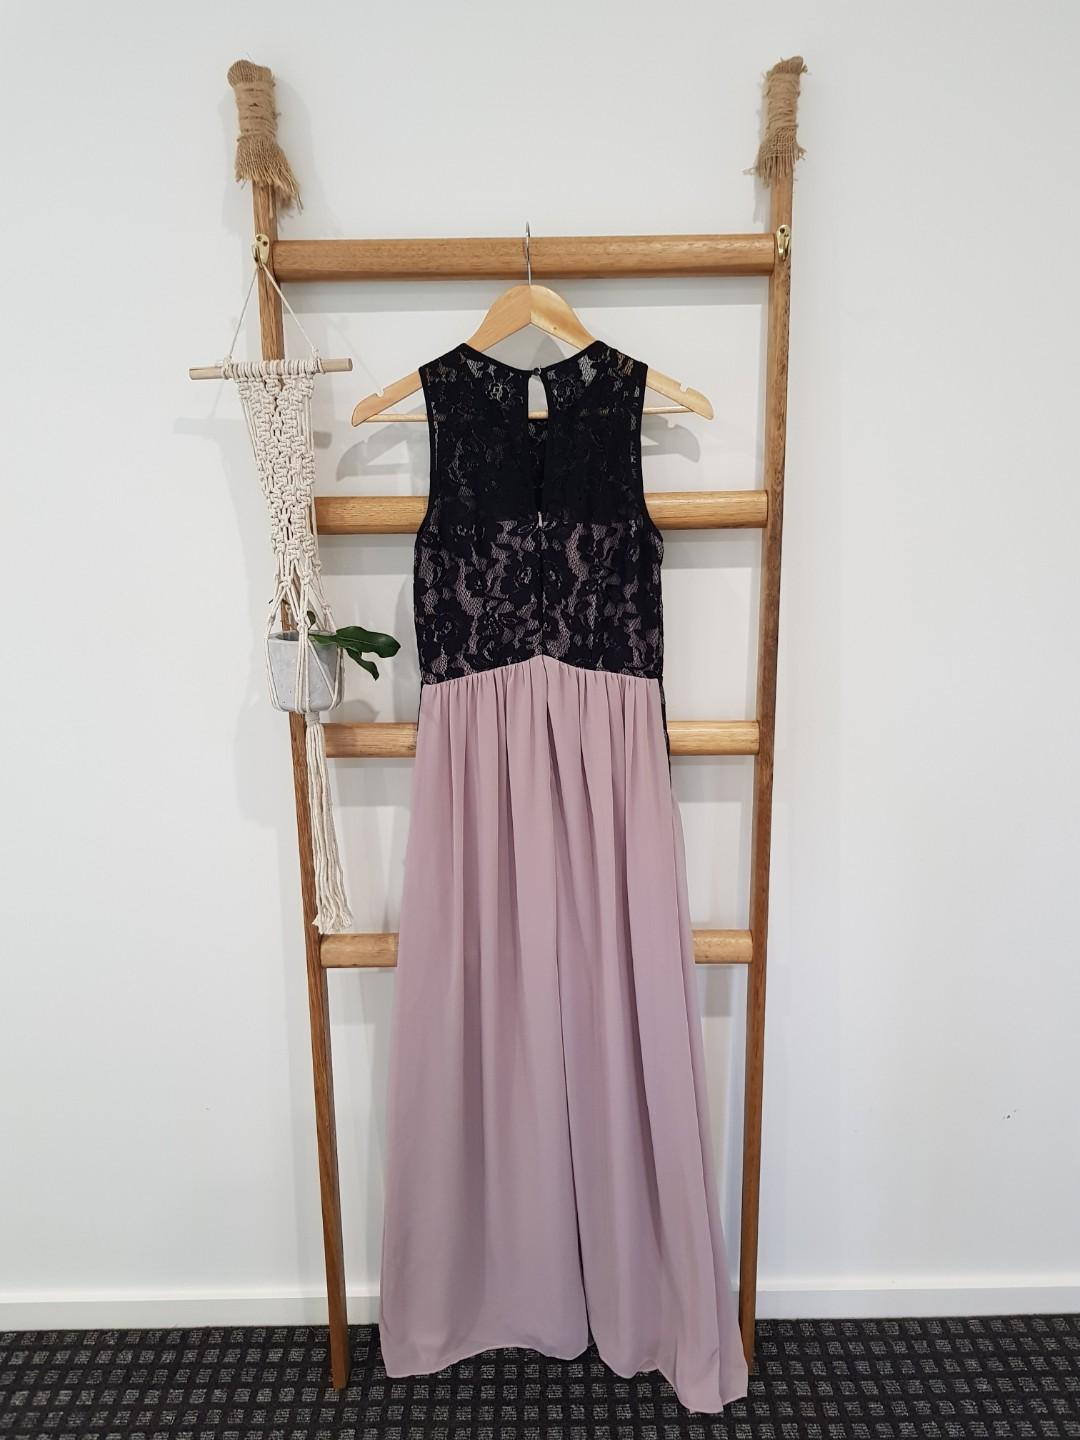 Pastel Pink Formal Dress with Black Lace Detailing